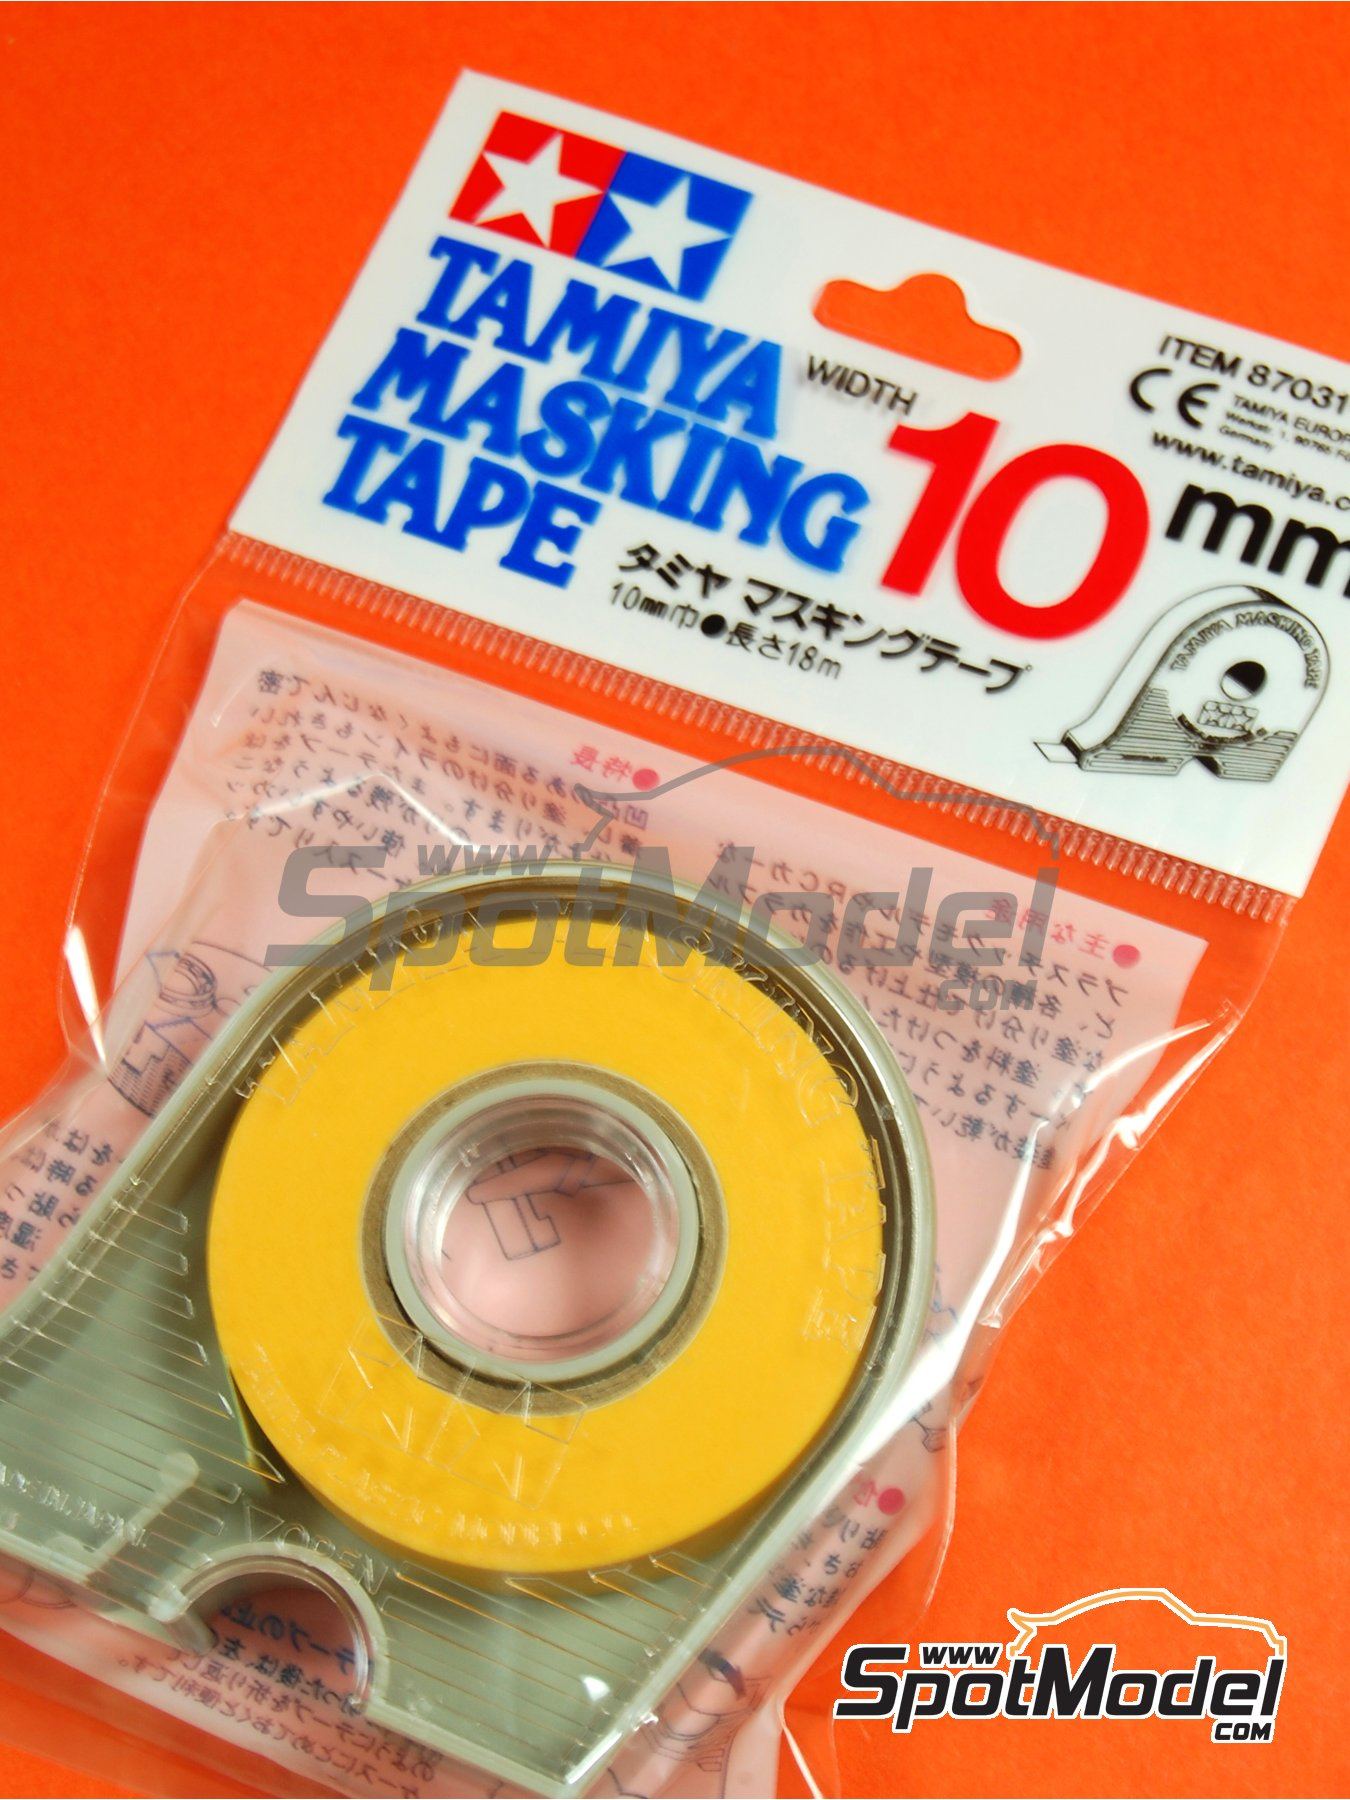 Masking Tape 10mm | Masks manufactured by Tamiya (ref. TAM87031) image